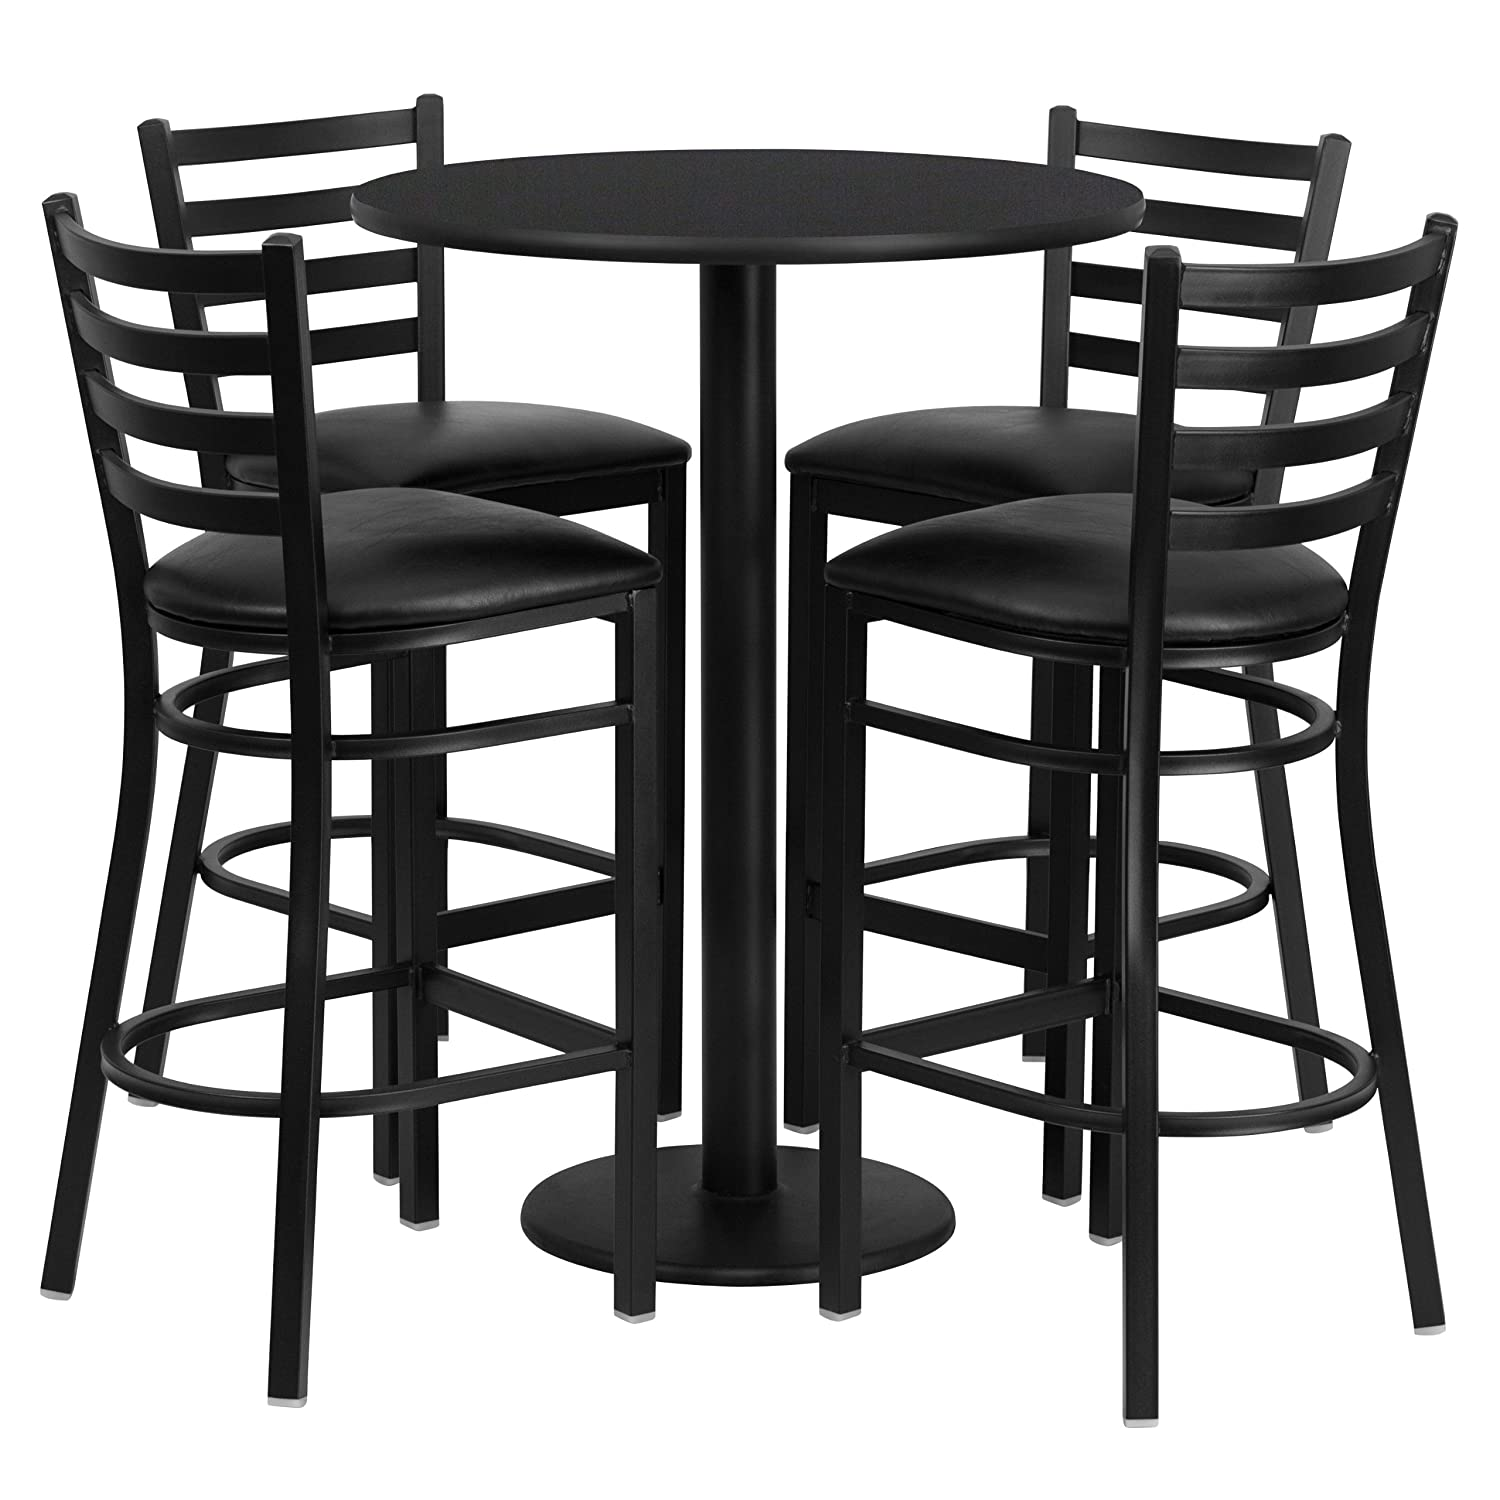 Amazon.com Flash Furniture 30u0027u0027 Round Black Laminate Table Set with 4 Ladder Back Metal Barstools - Black Vinyl Seat Kitchen u0026 Dining  sc 1 st  Amazon.com & Amazon.com: Flash Furniture 30u0027u0027 Round Black Laminate Table Set with ...